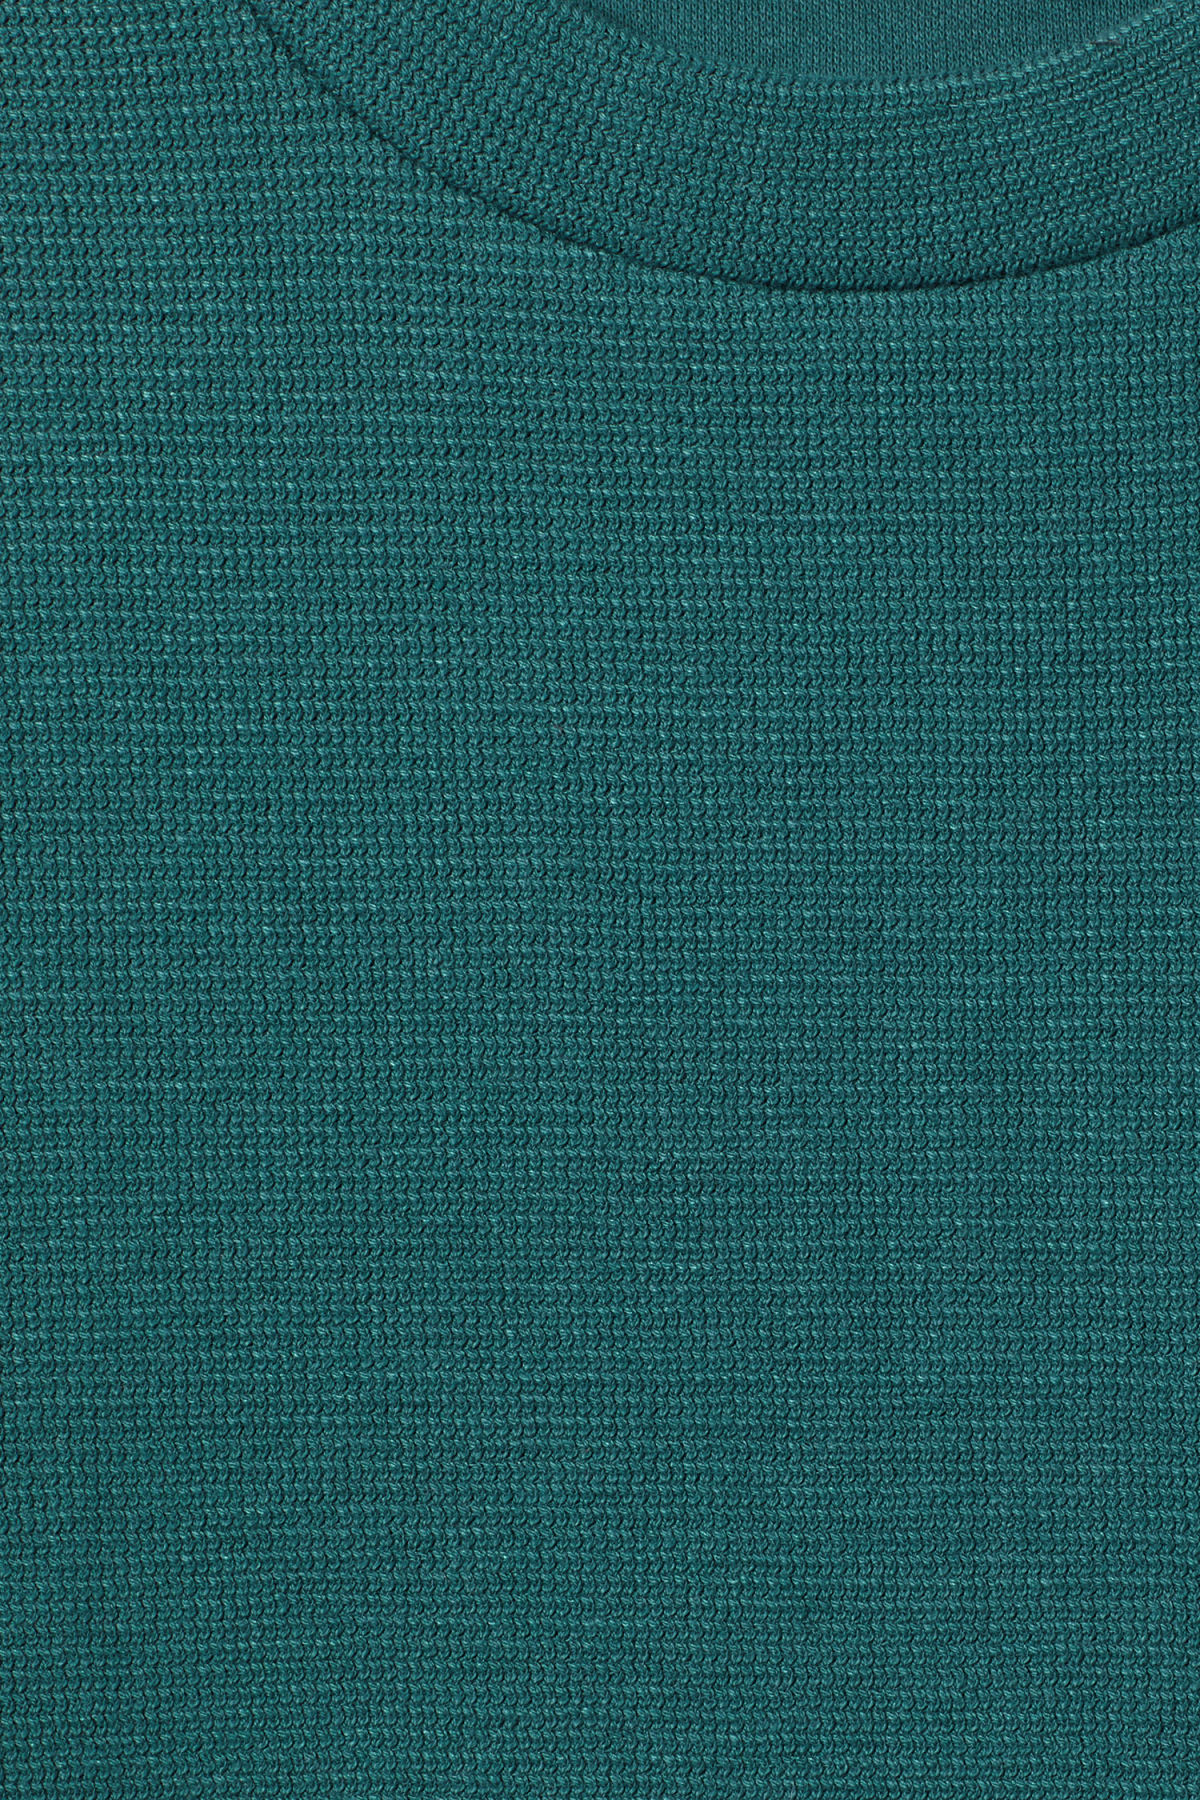 Detailed image of Weekday grand t-shirt in turquoise